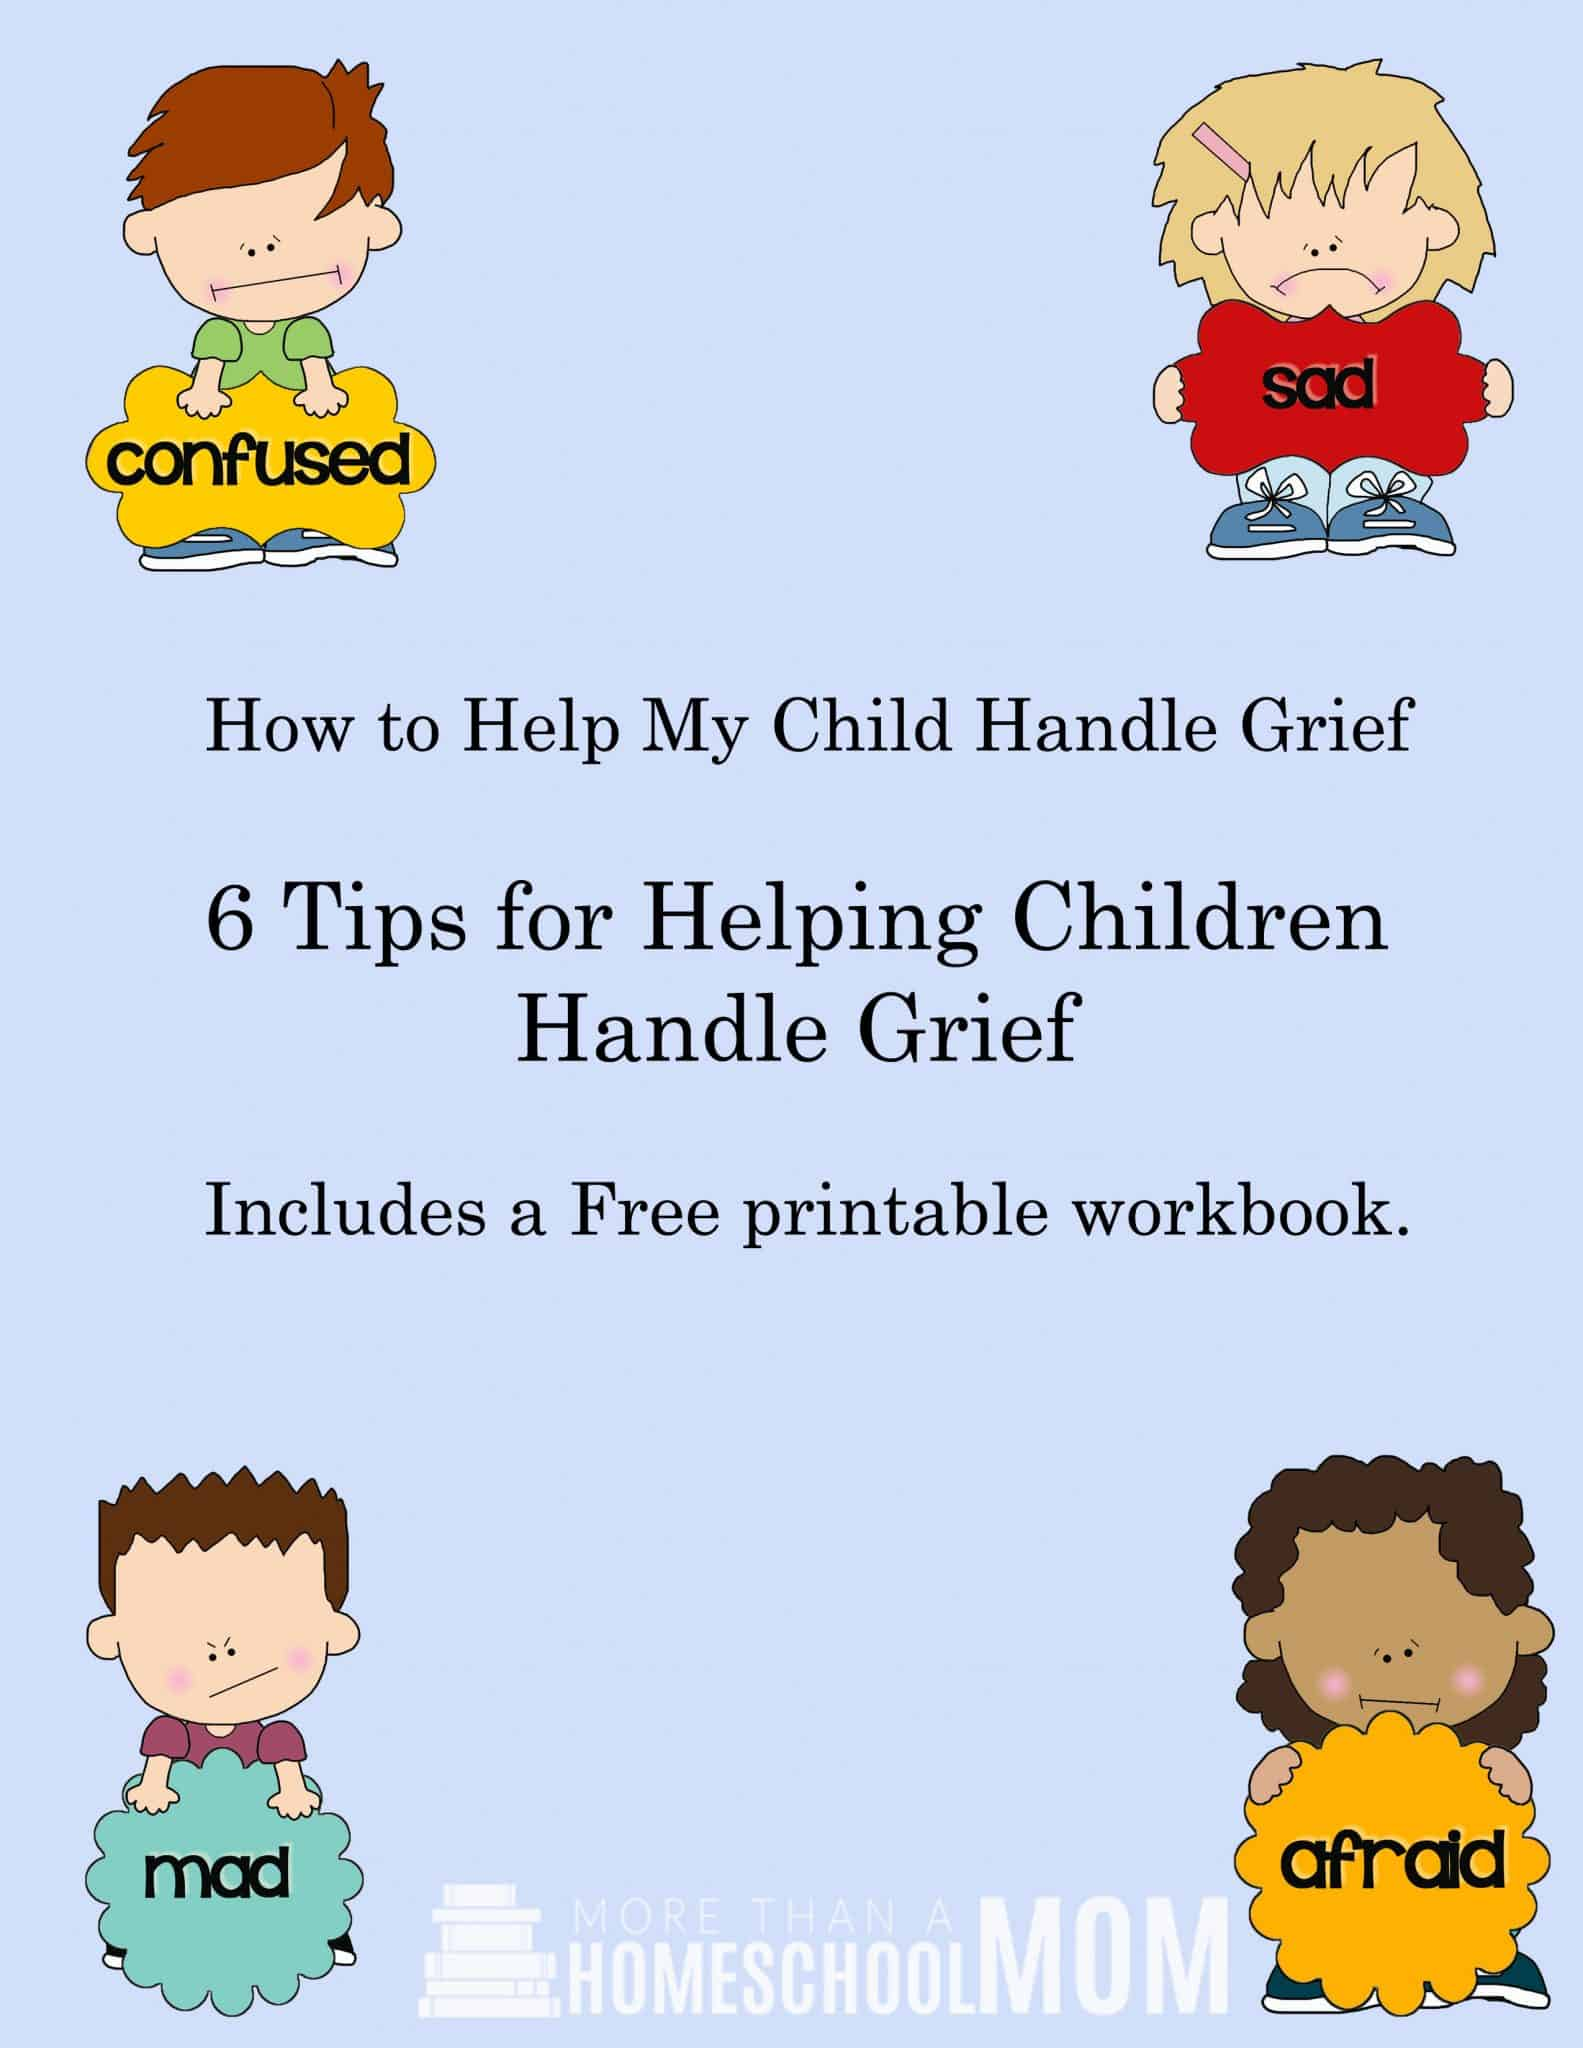 How to Help My Child Handle Grief - Includes Free Printable workbook - #parenting #education #grief #freeprintable #feelings #parent #parentingtips